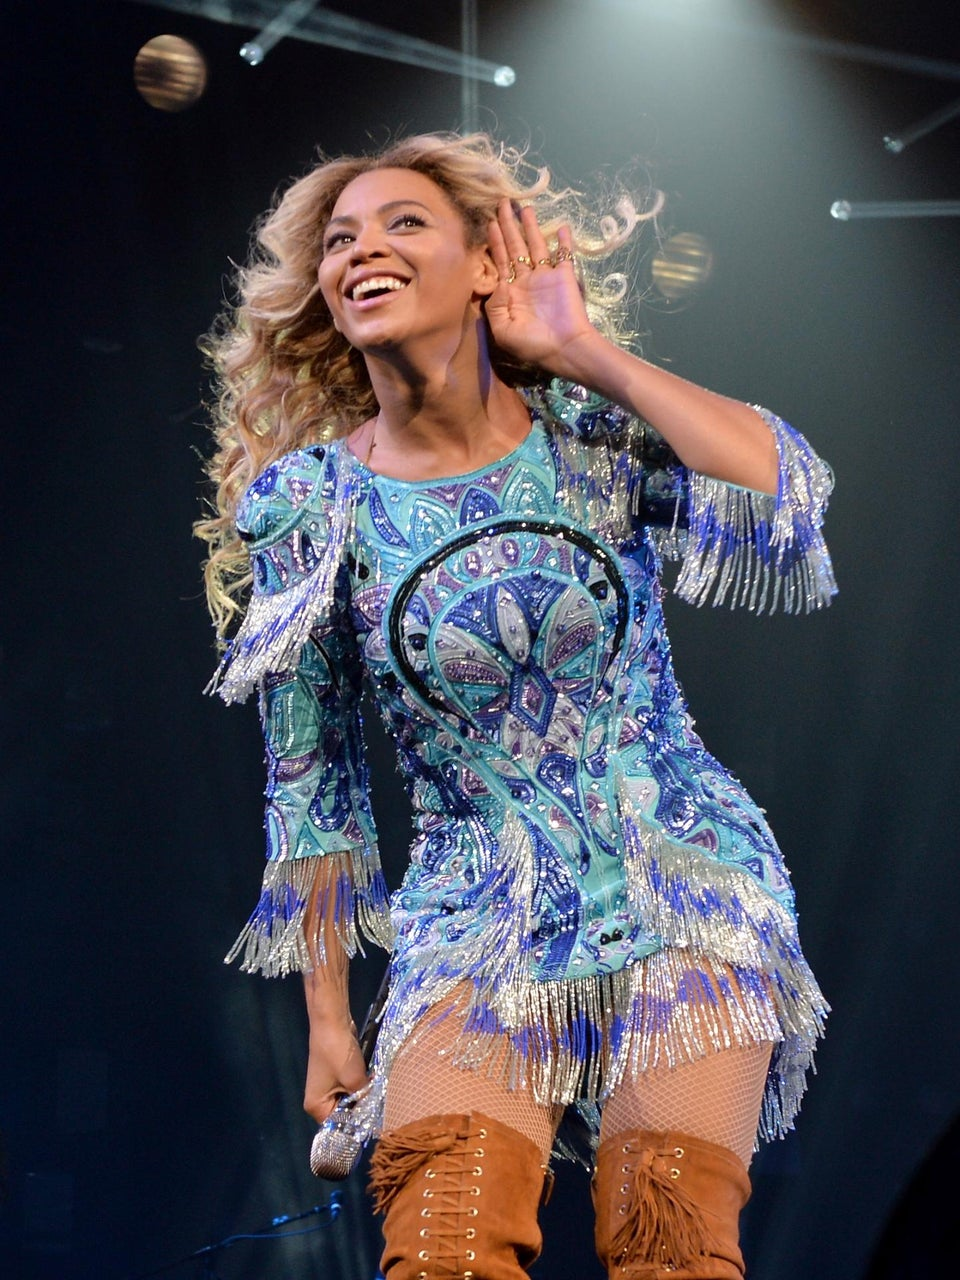 10 #BeyonceAlwaysOnBeat Video Memes That Are Too Hilarious to Pass Up